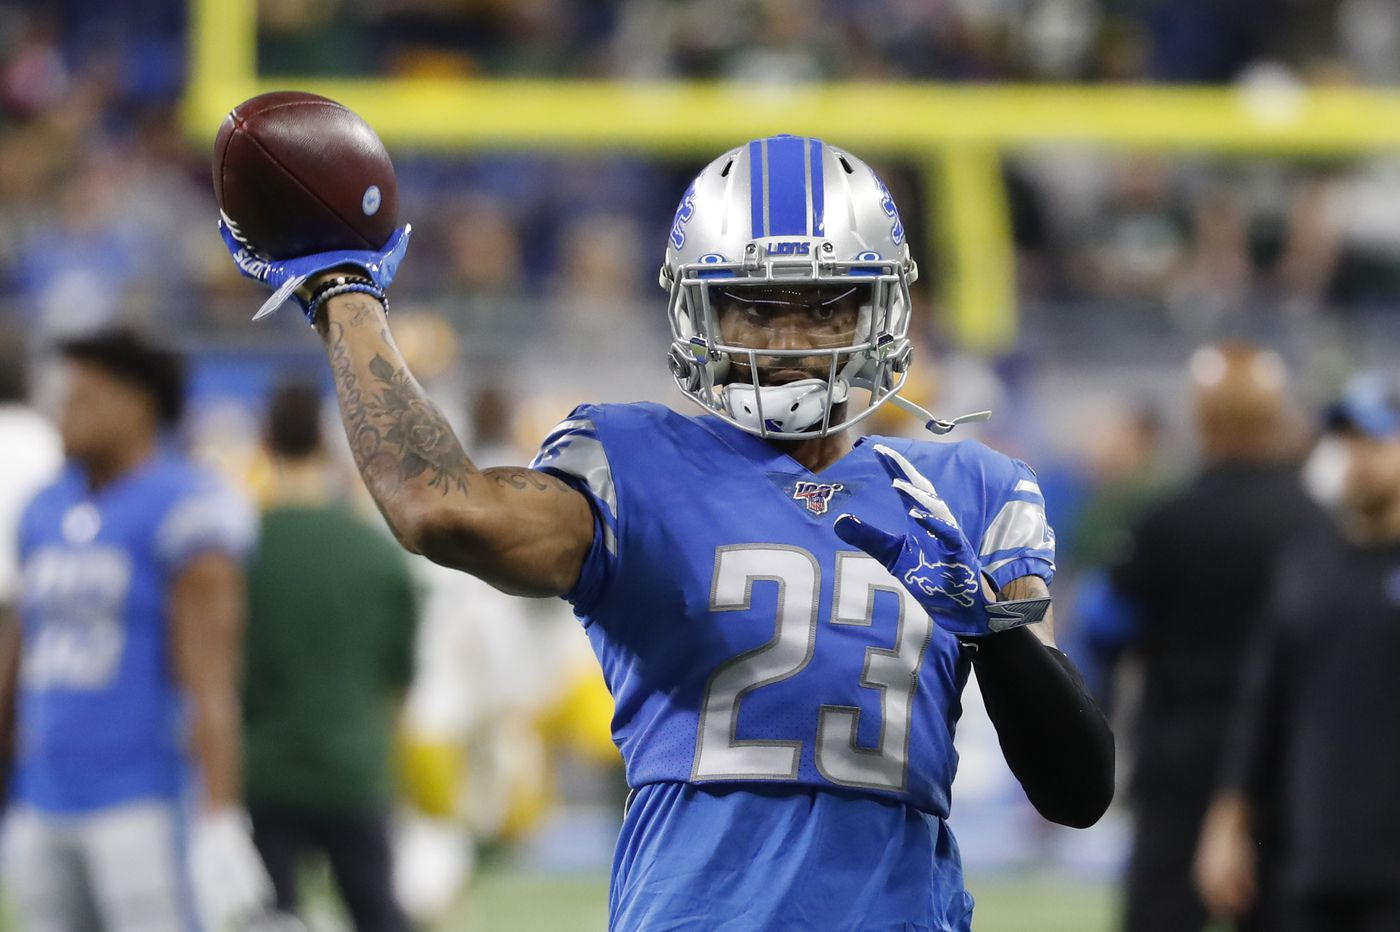 Eagles' Darius Slay happy to land in Philadelphia, even happier to leave Matt Patricia's Lions: 'I had to get out'